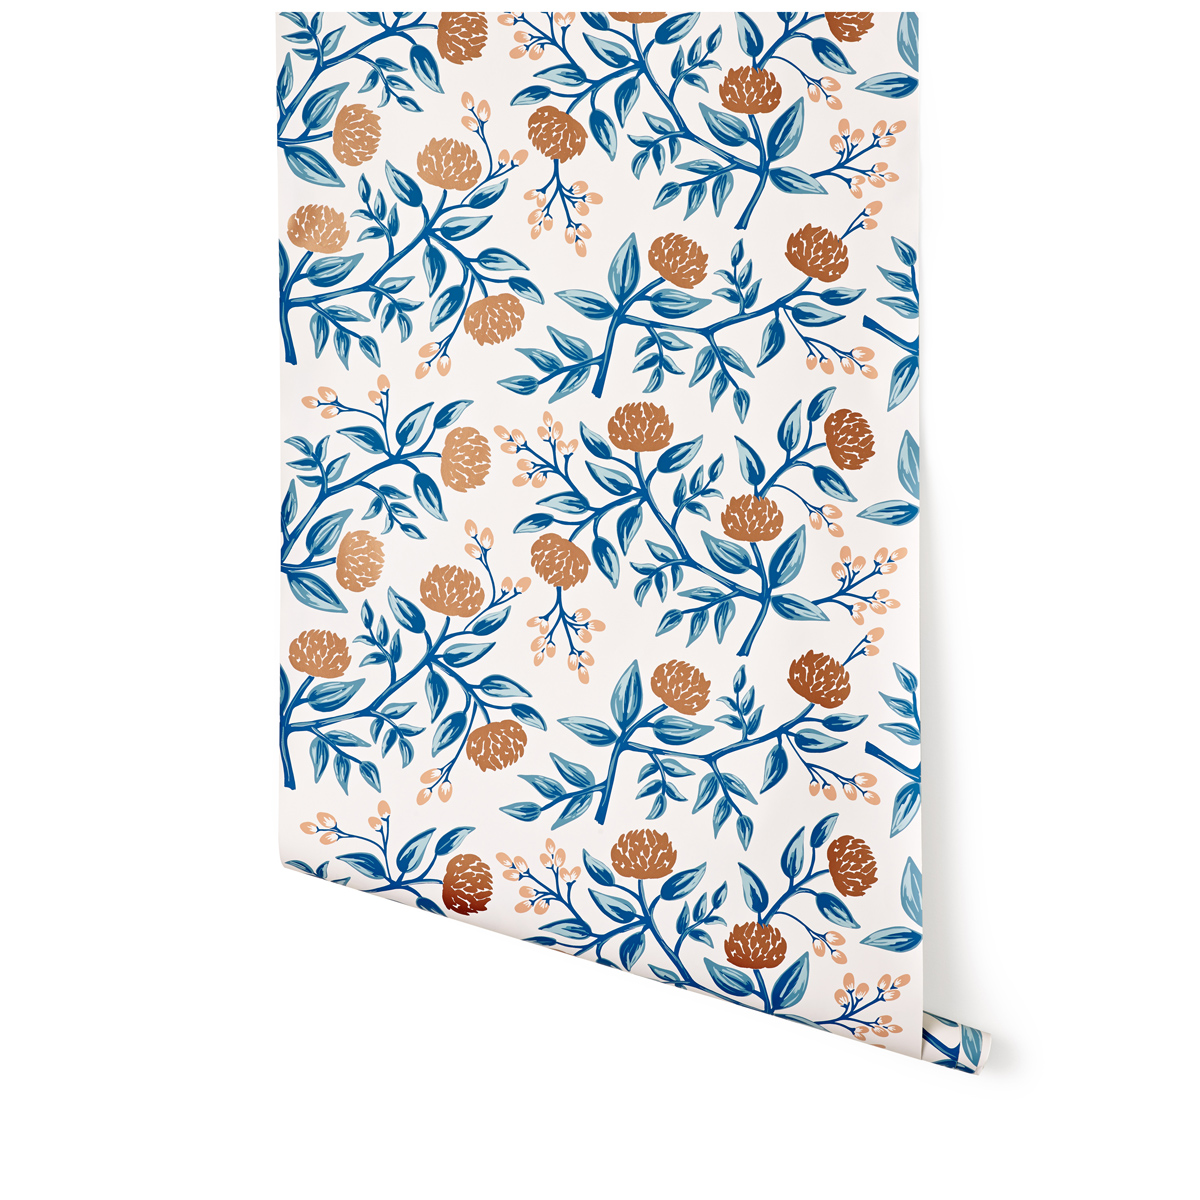 Peonies Copper Wallpaper Roll Hygge and West Rifle Paper Co 1200x1200